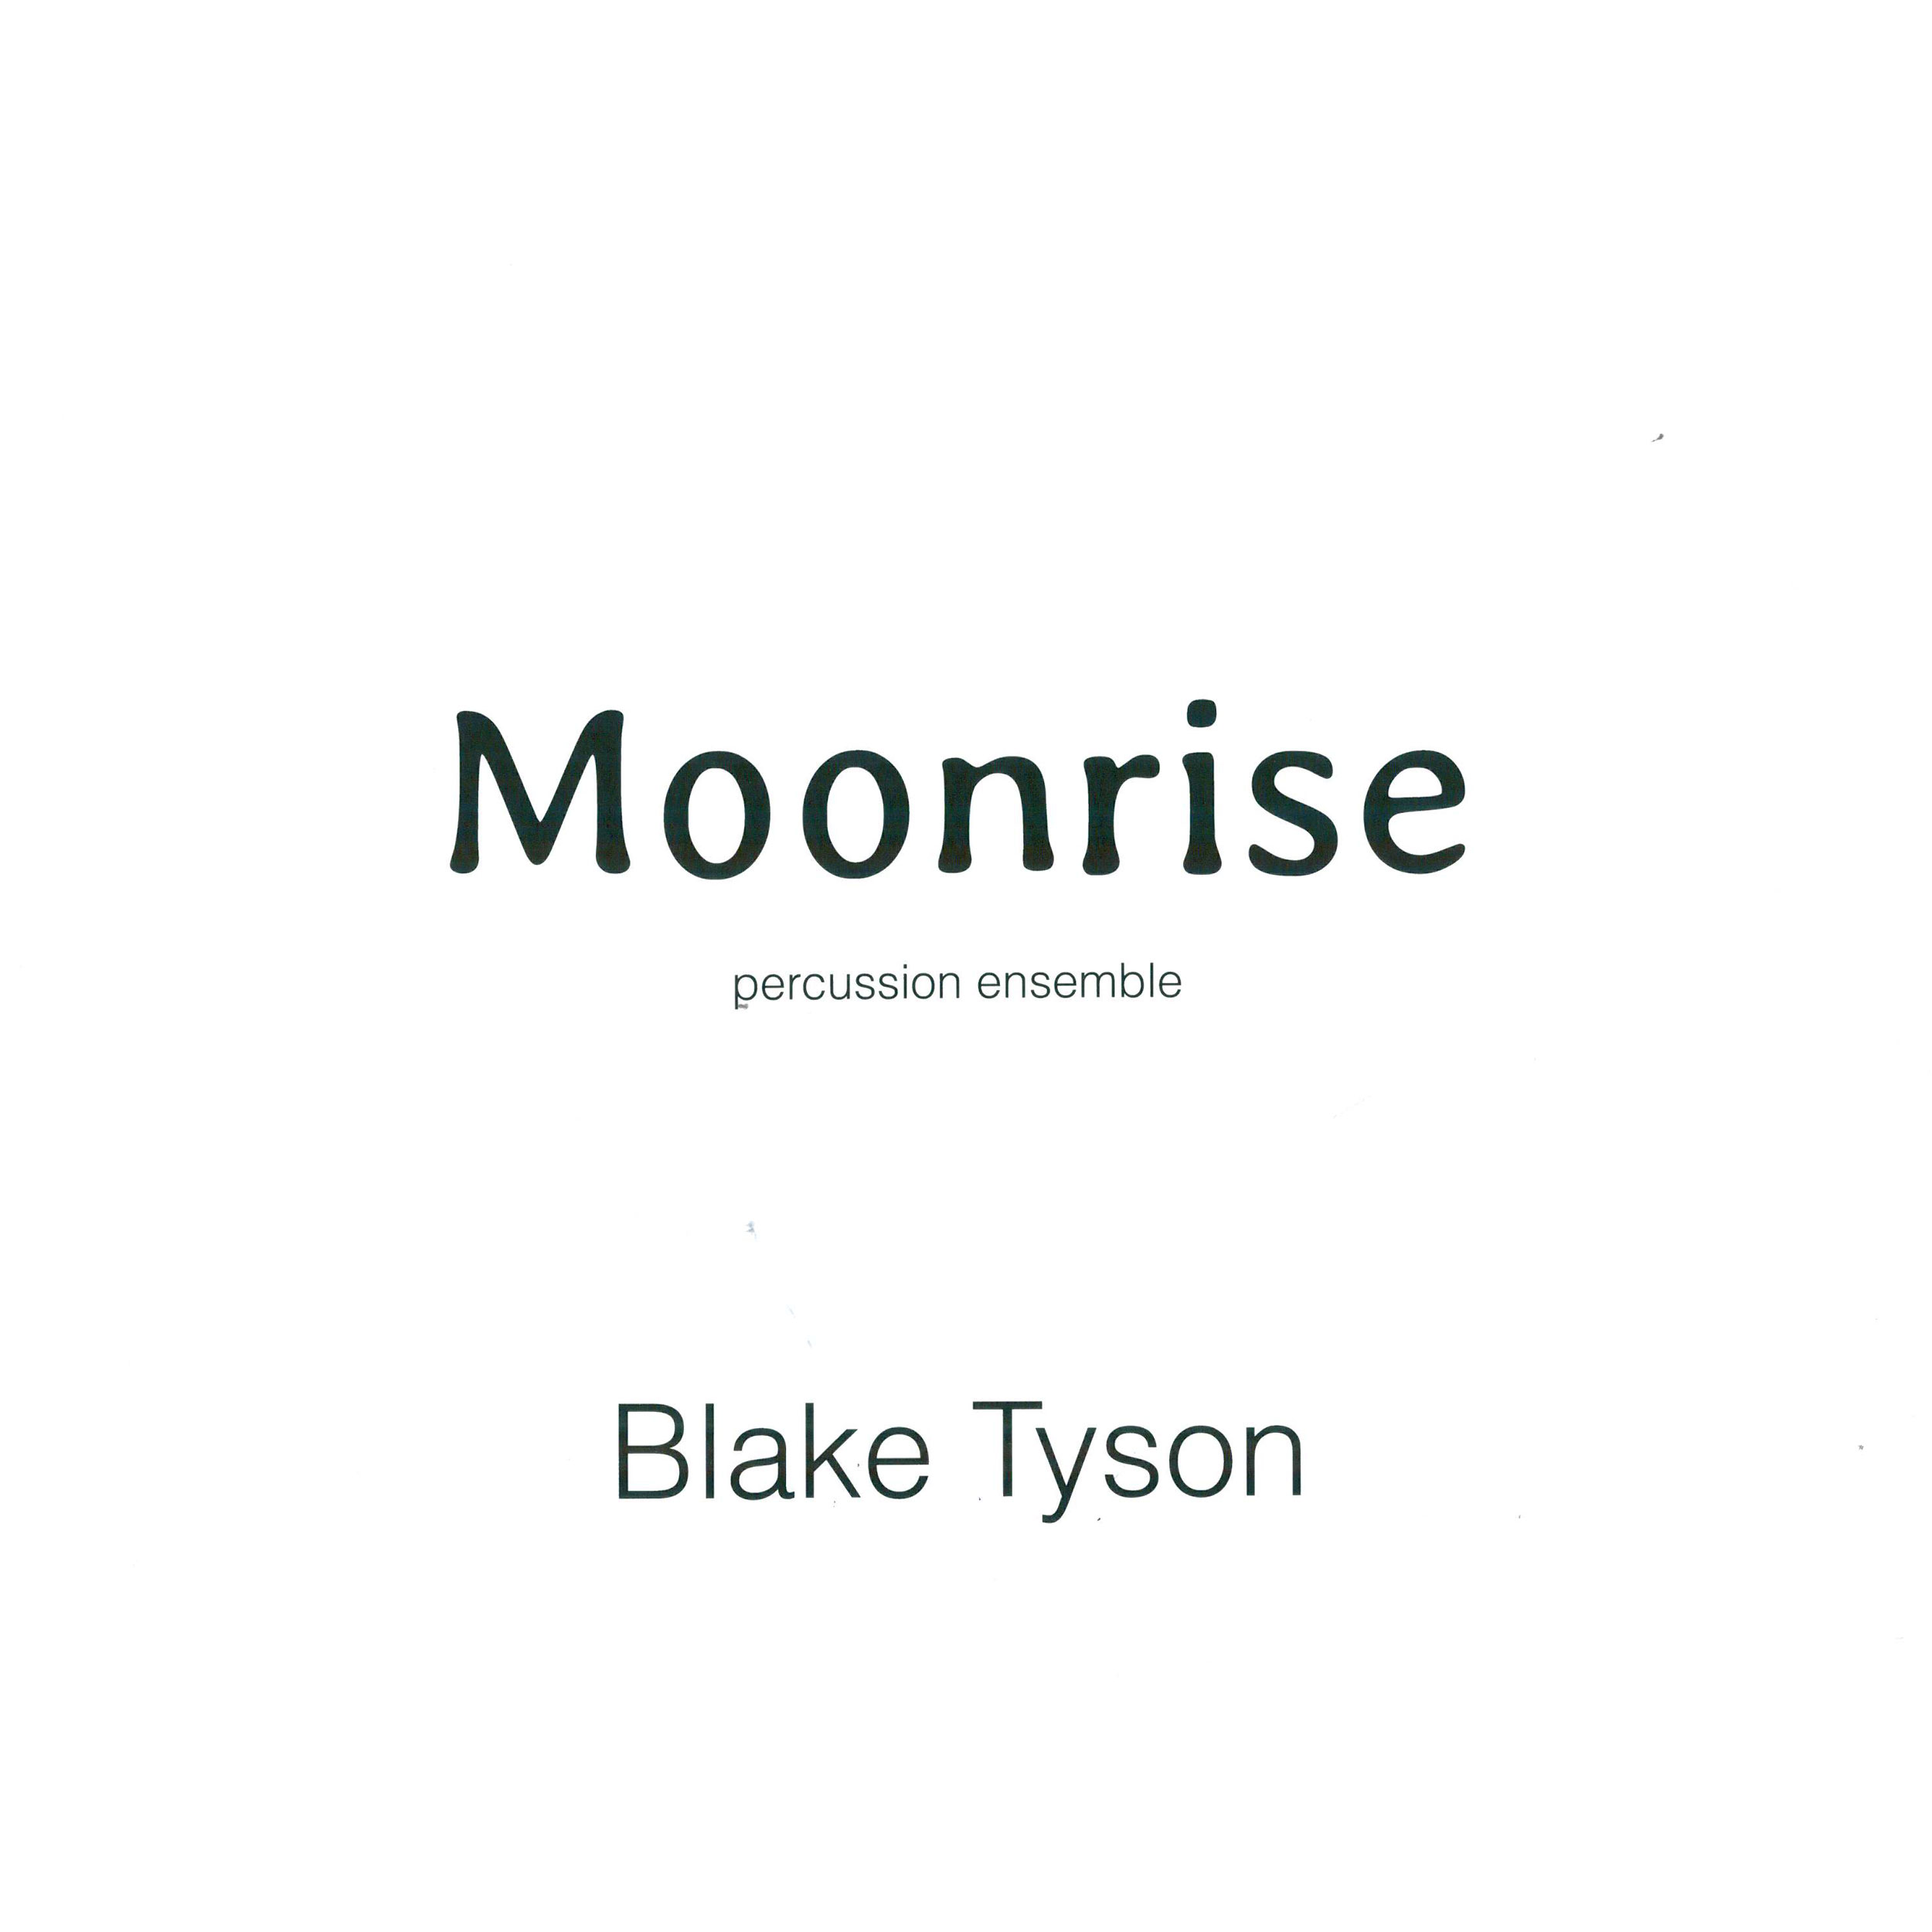 Moonrise by Blake Tyson